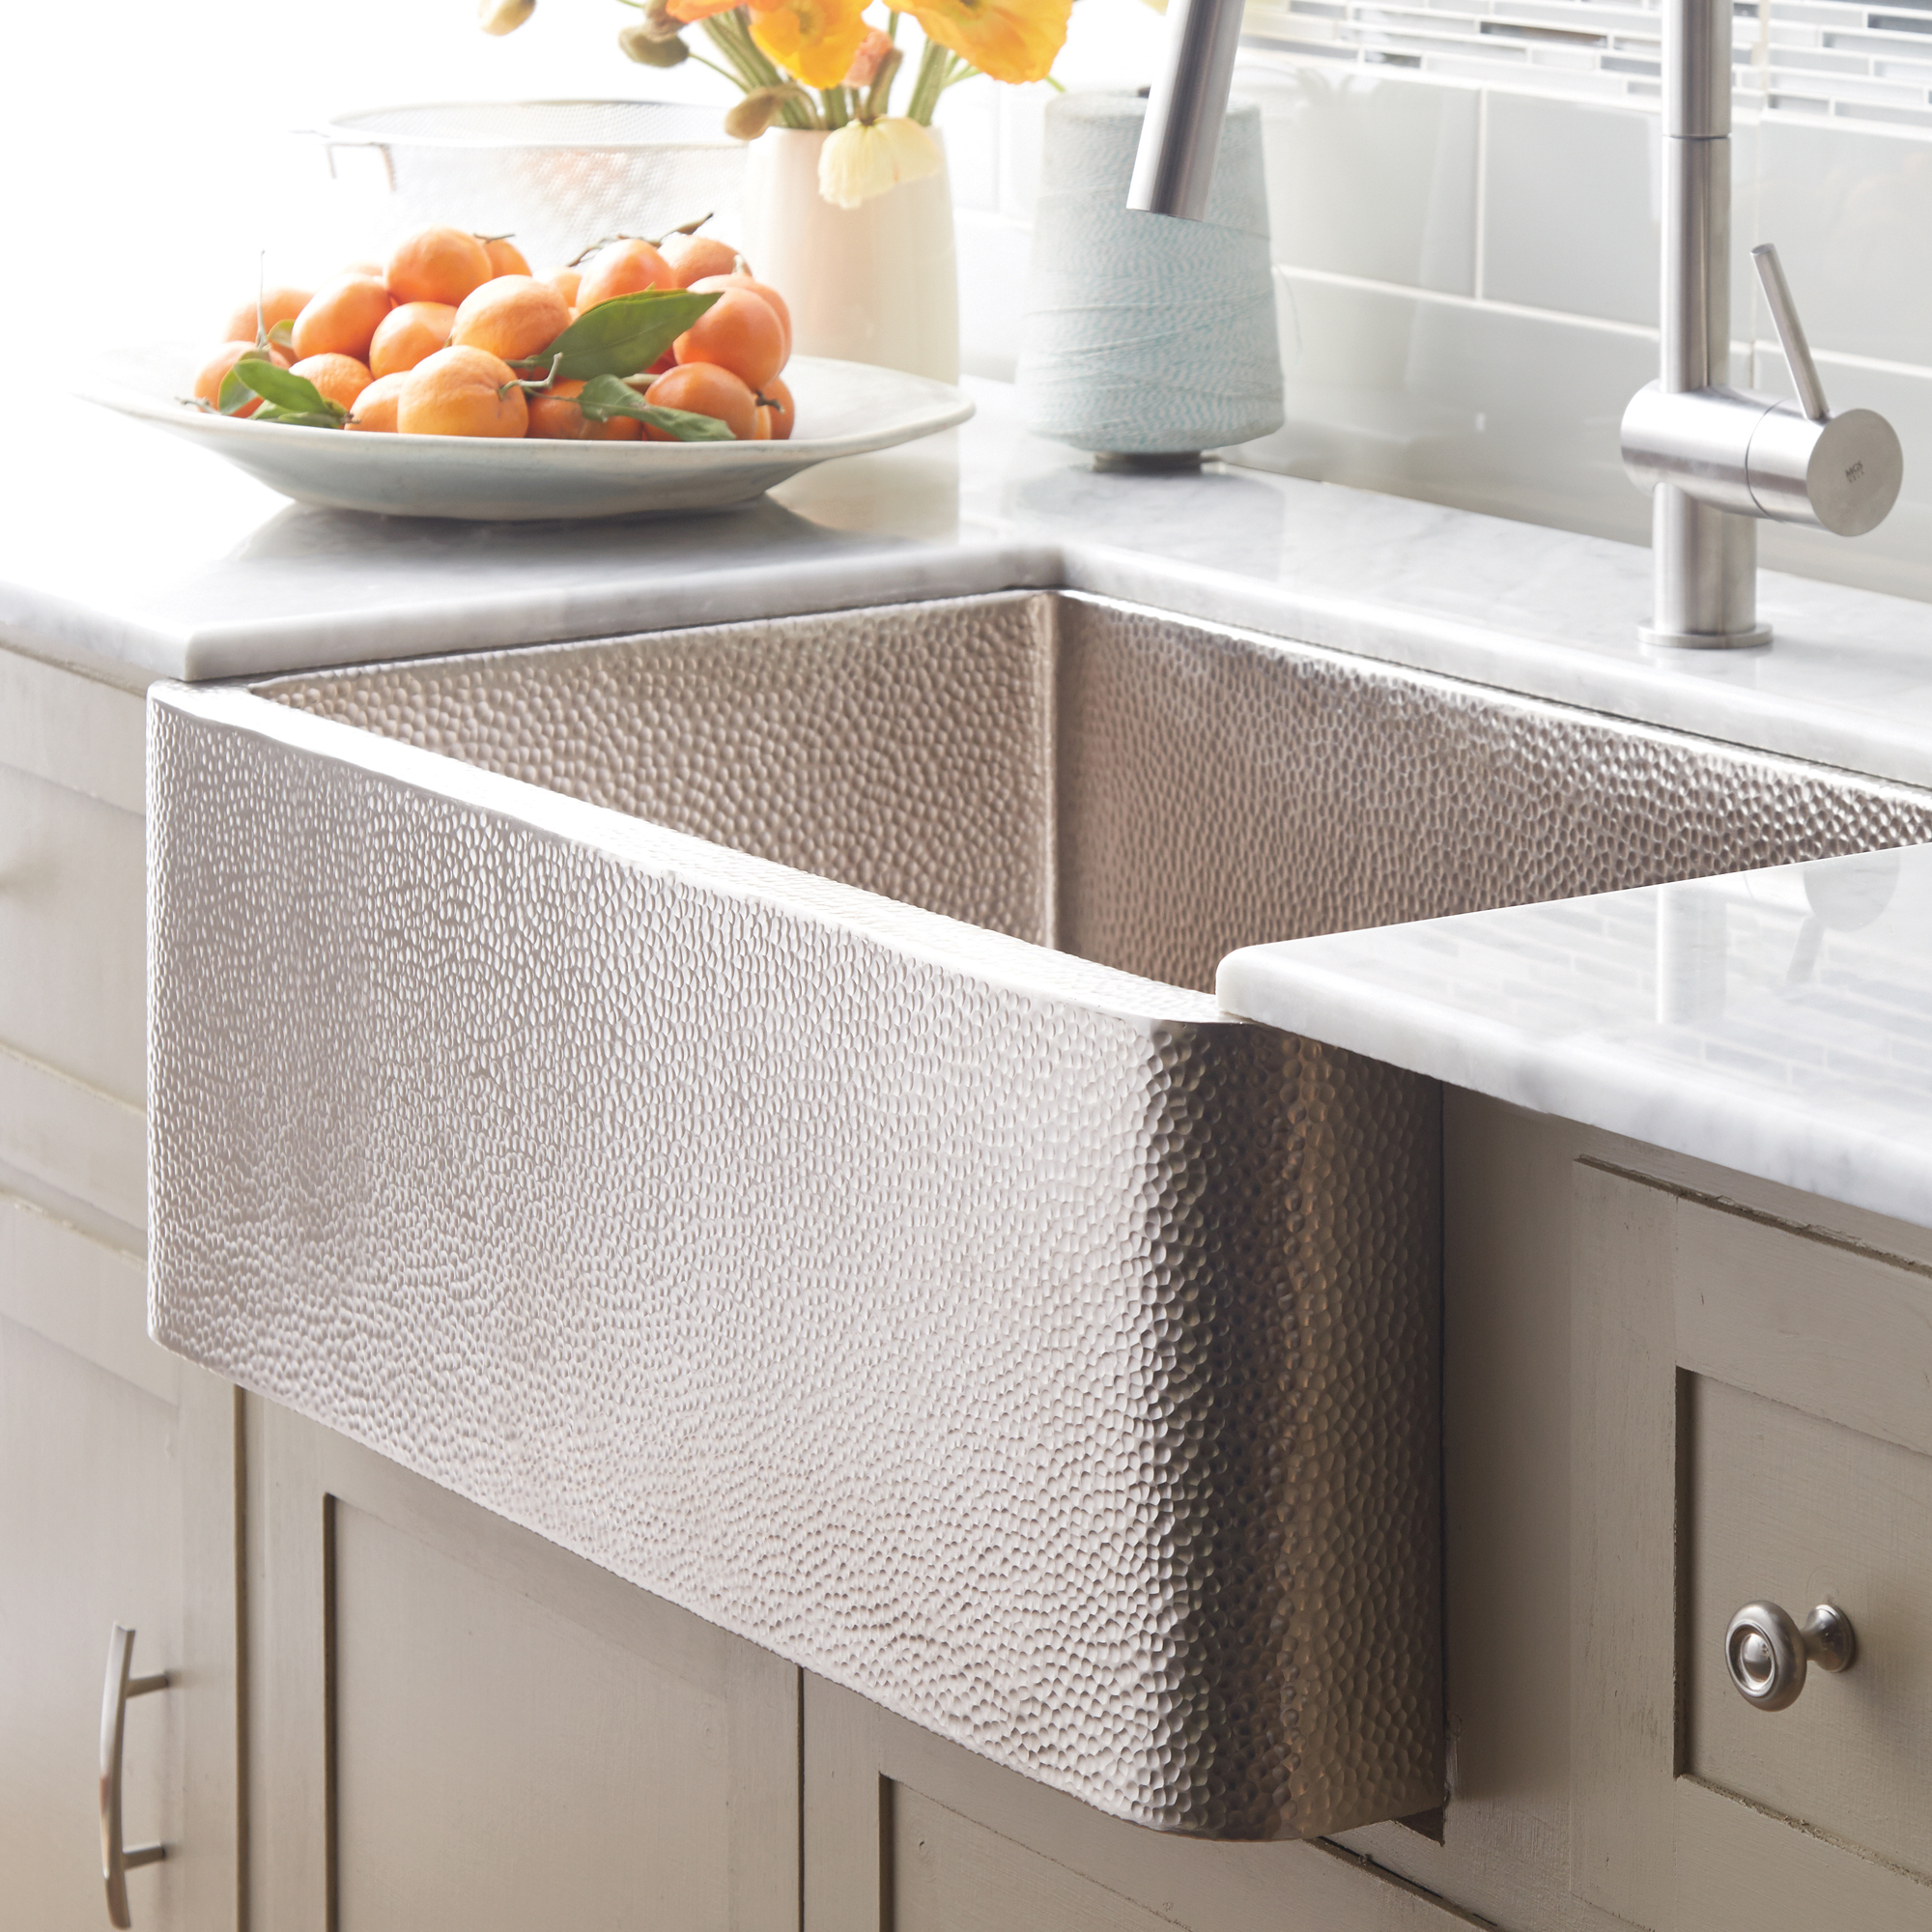 Recycled Copper Farmhouse Kitchen Sink